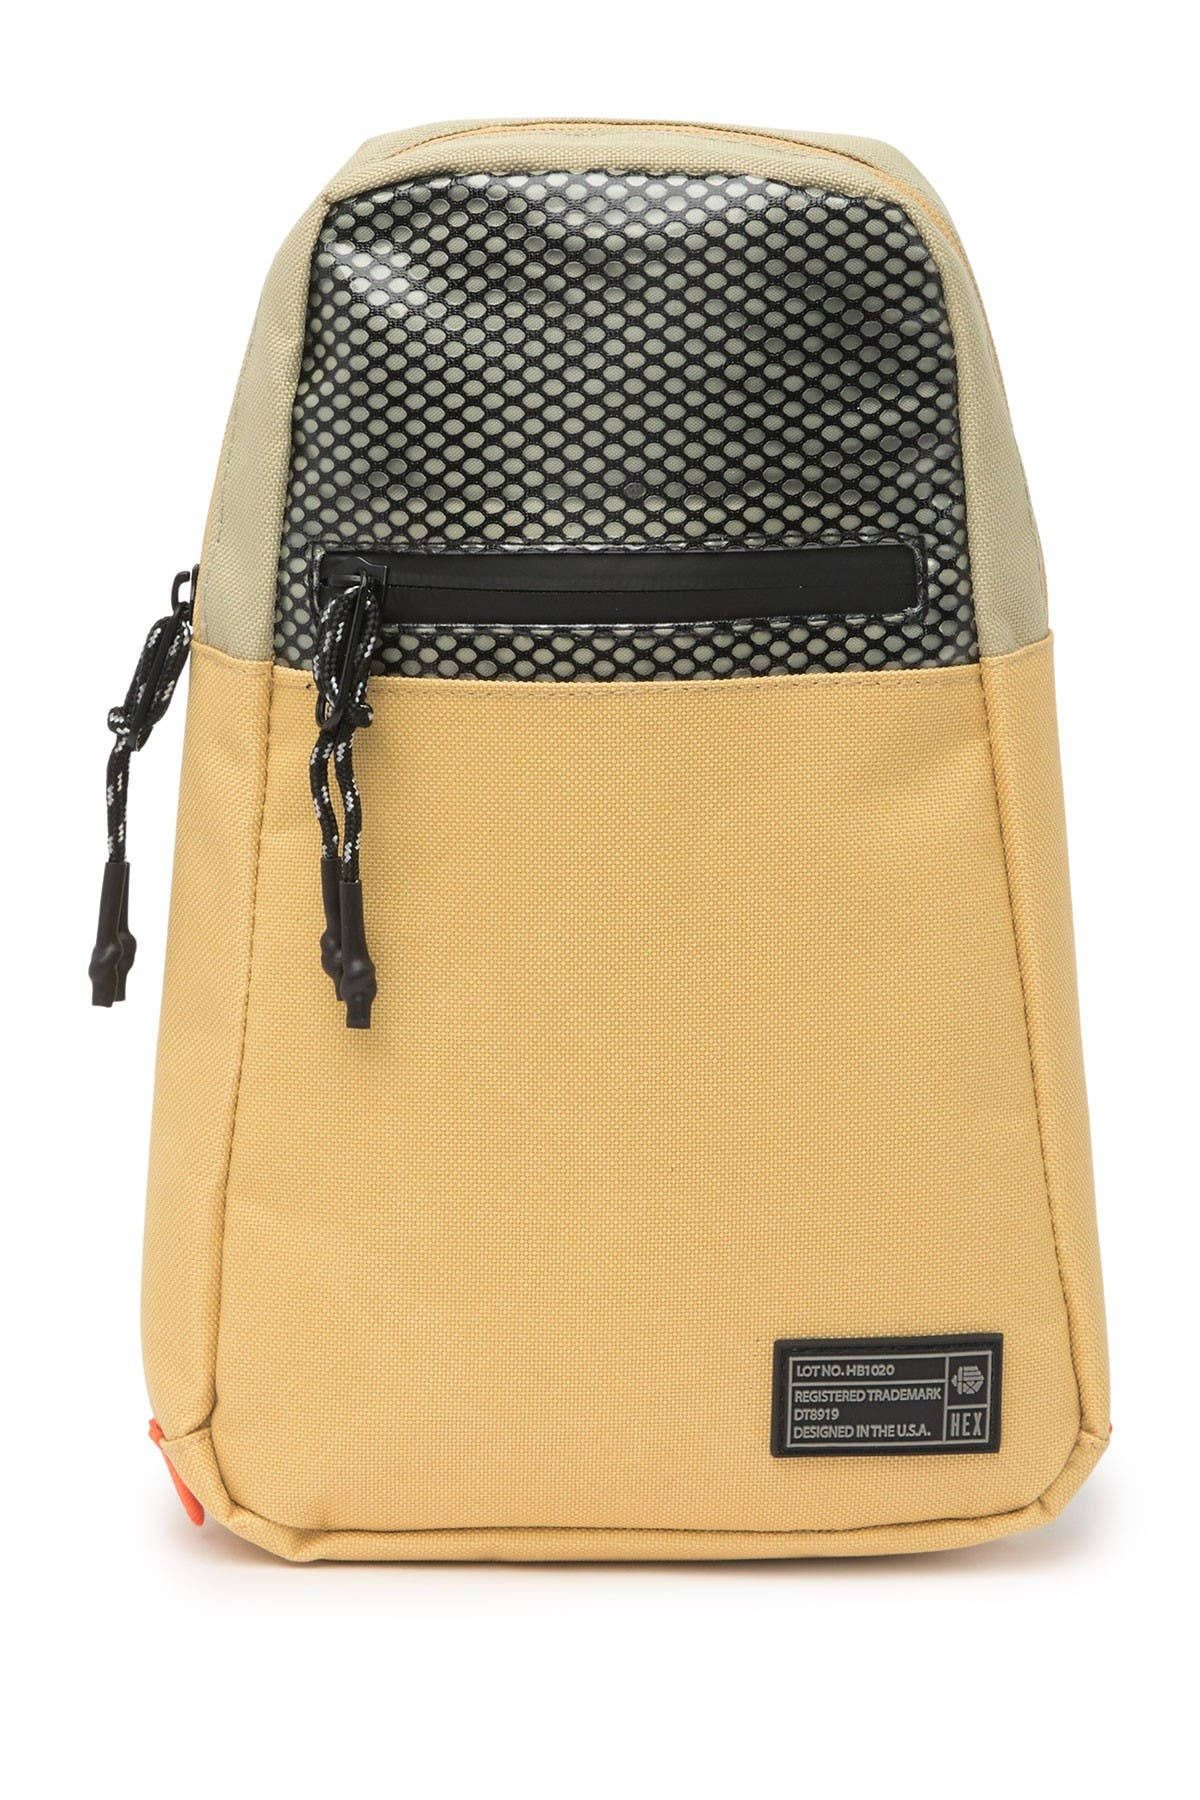 Image of Hex Accessories Single Strap Backpack